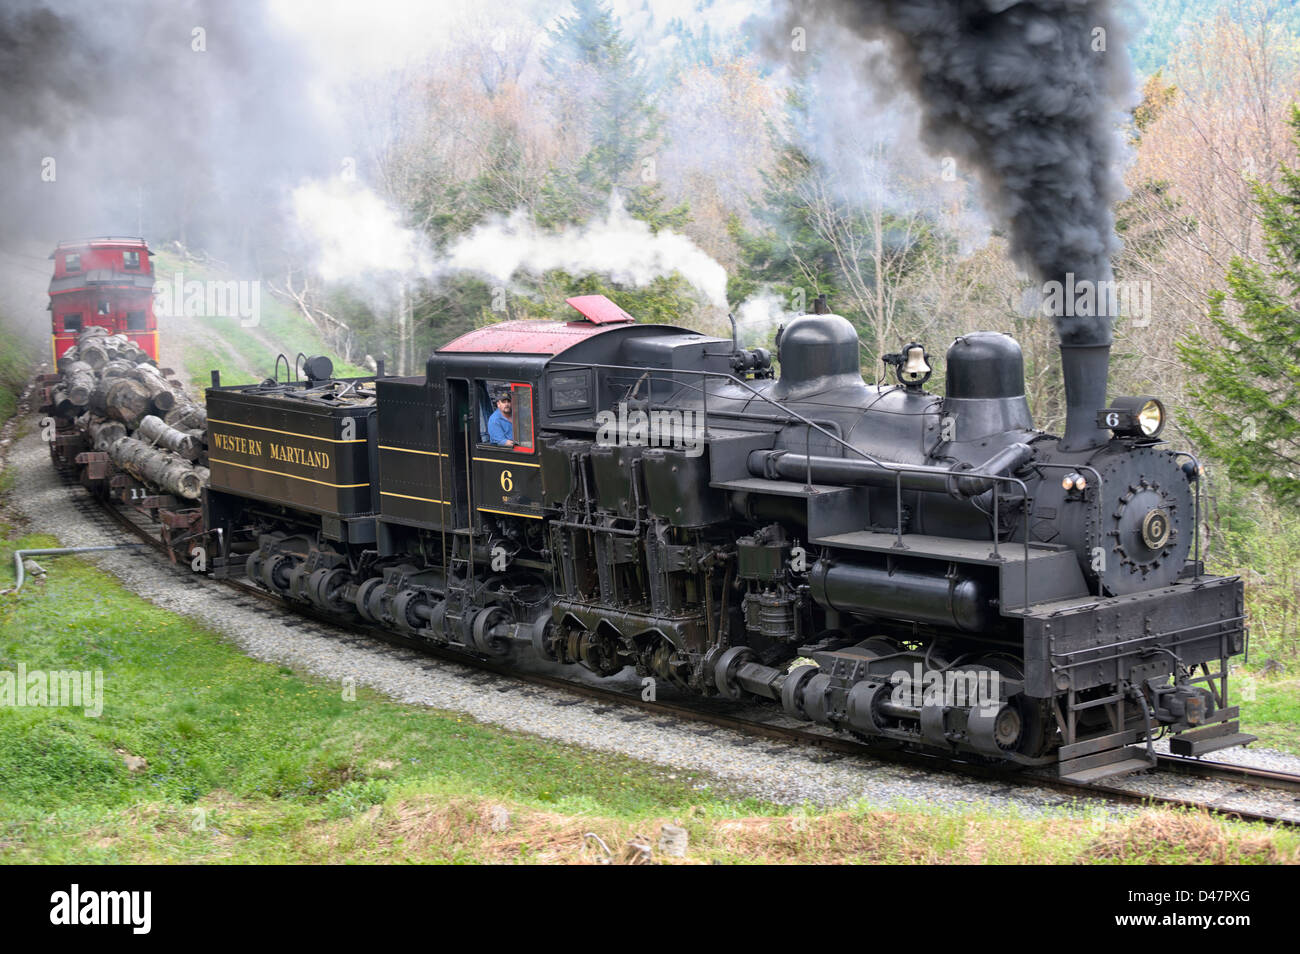 Steam Engine Stock Photos & Steam Engine Stock Images - Alamy